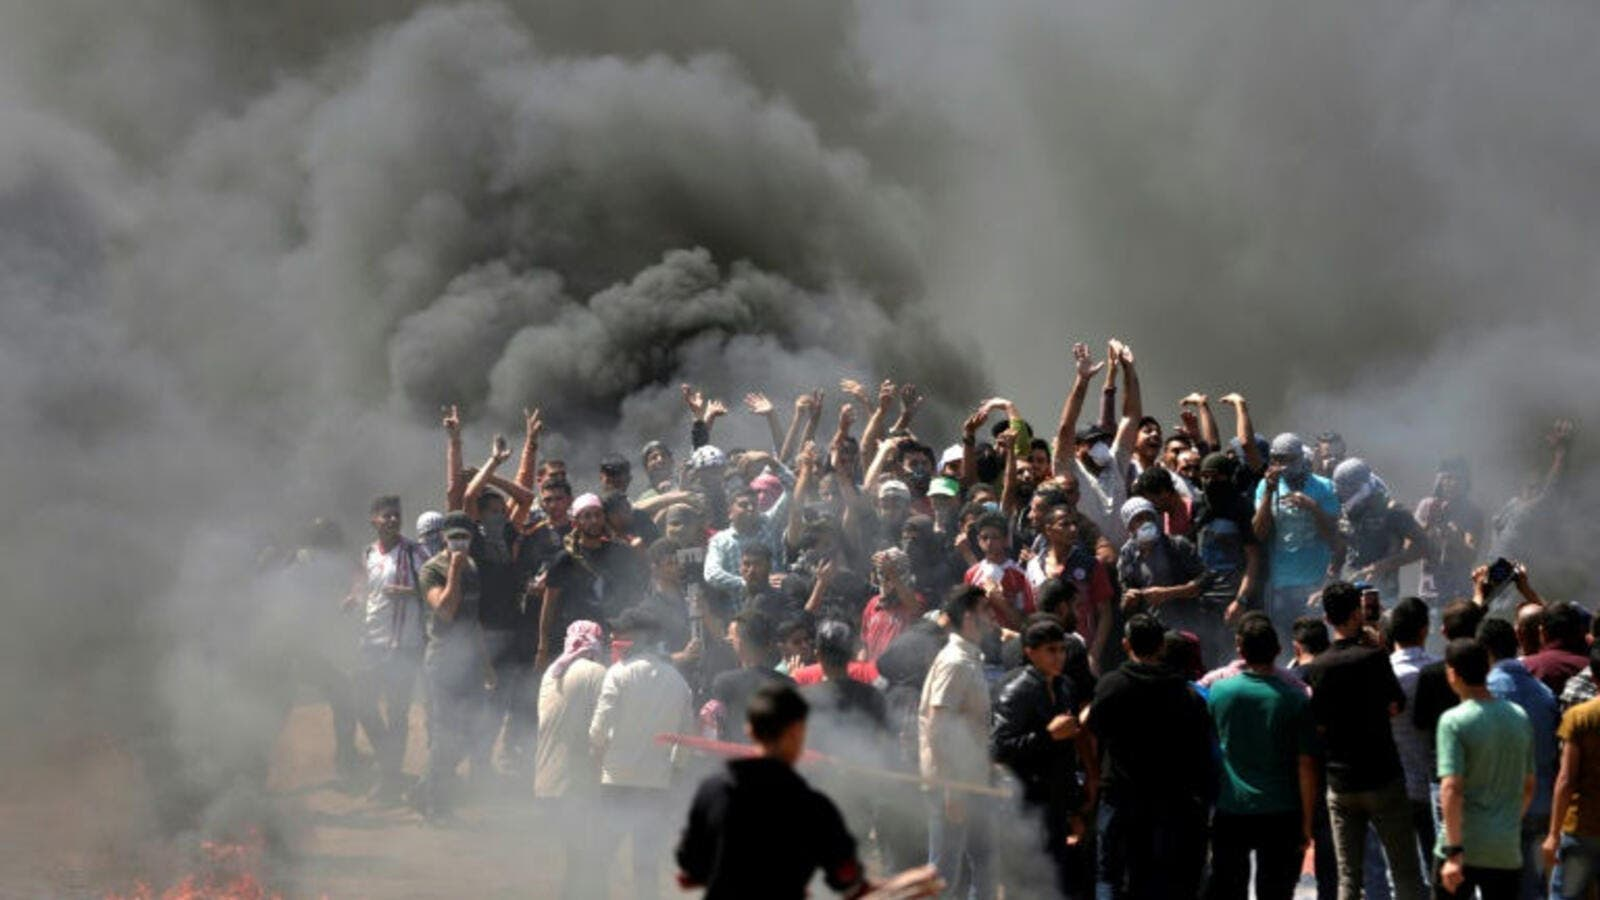 Palestinians burn tyres near the Strip border on May 14, 2018. (AFP/File Photo)